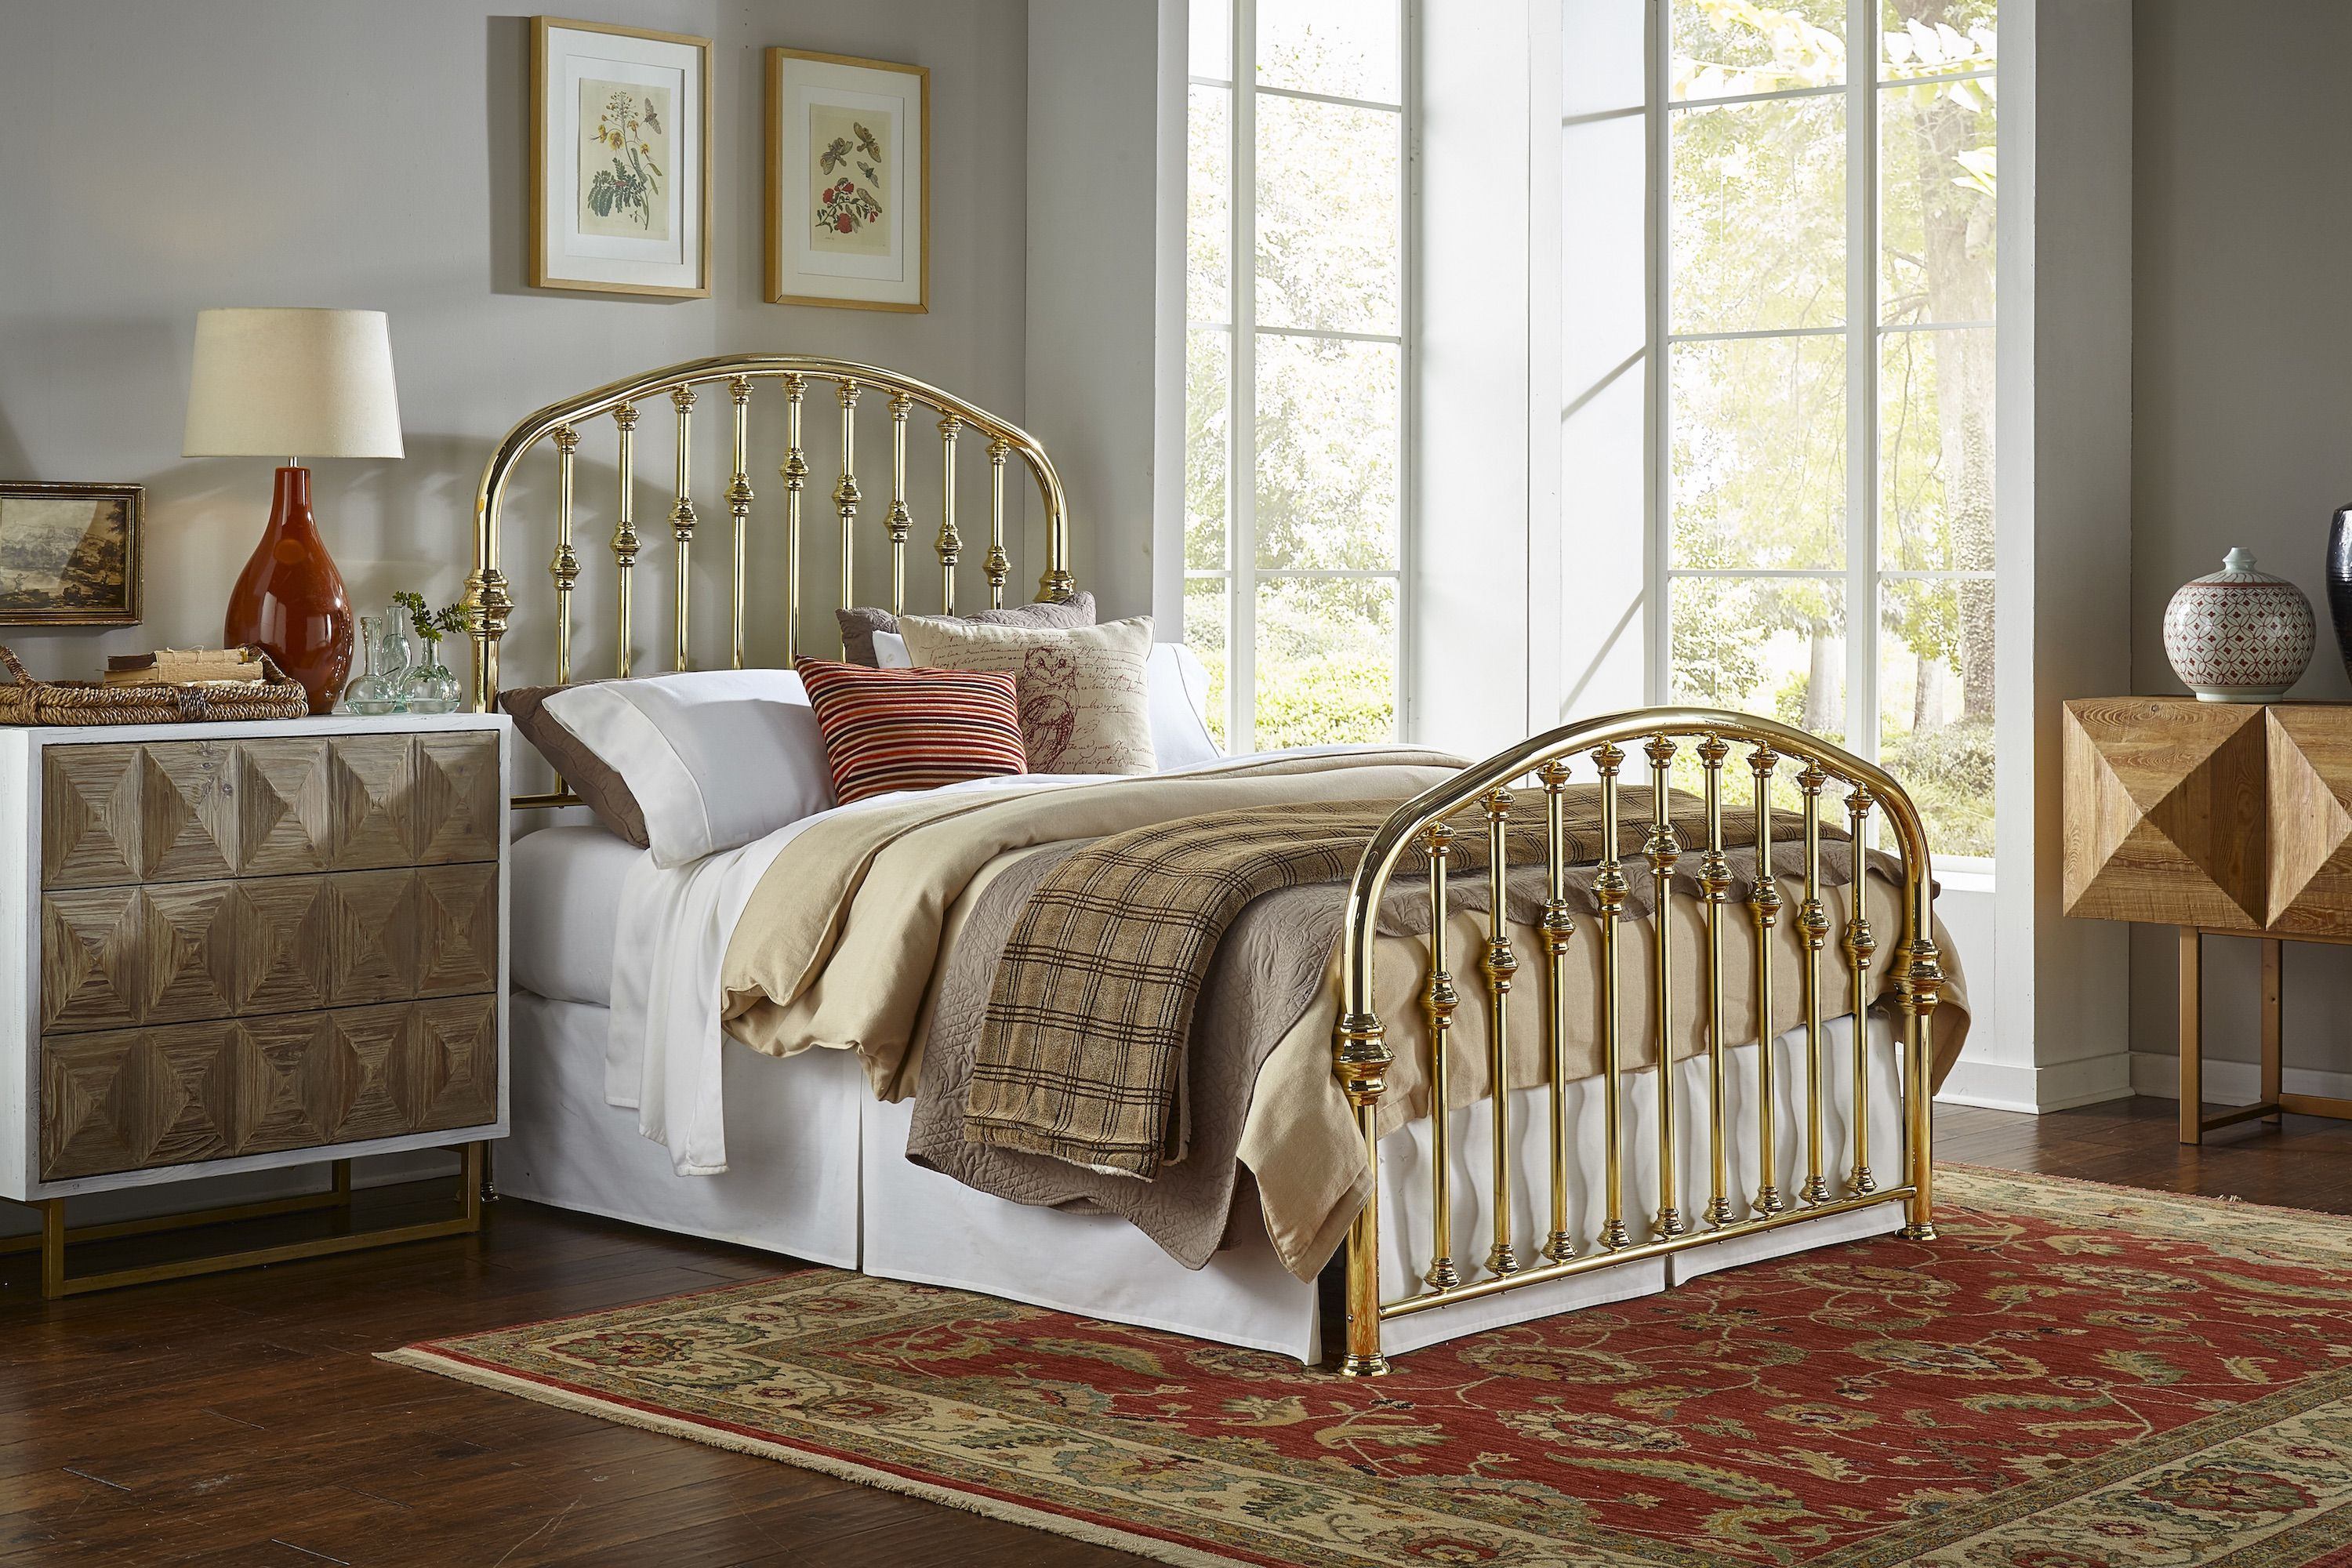 Arched headboard and footboard solid brass bed with